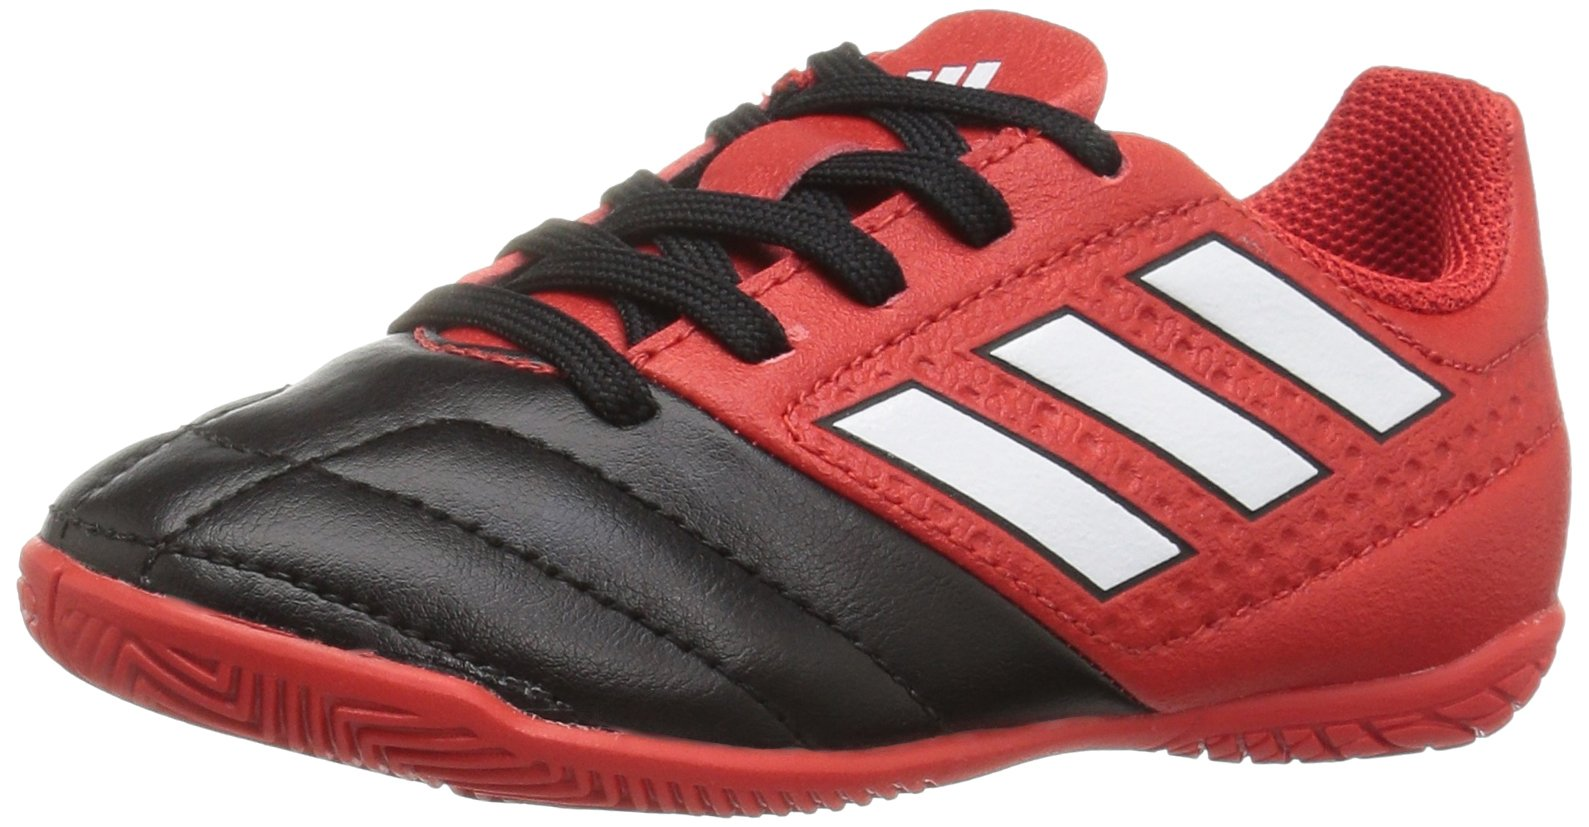 06b05d8a88cf Galleon - Adidas Performance Kids  Ace 16.4 J Indoor Soccer Cleat ...